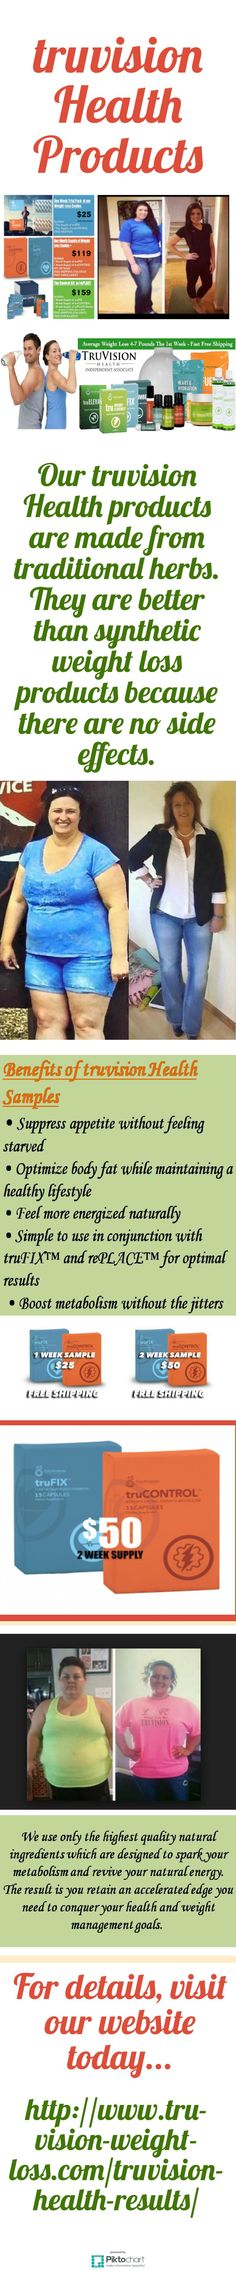 Our truvision Health products are made from traditional herbs. They are better than synthetic weight loss products because there are no side effects. In order to buy truvision Health products online, visit our online store: http://www.tru-vision-weight-loss.com/truvision-health-results/